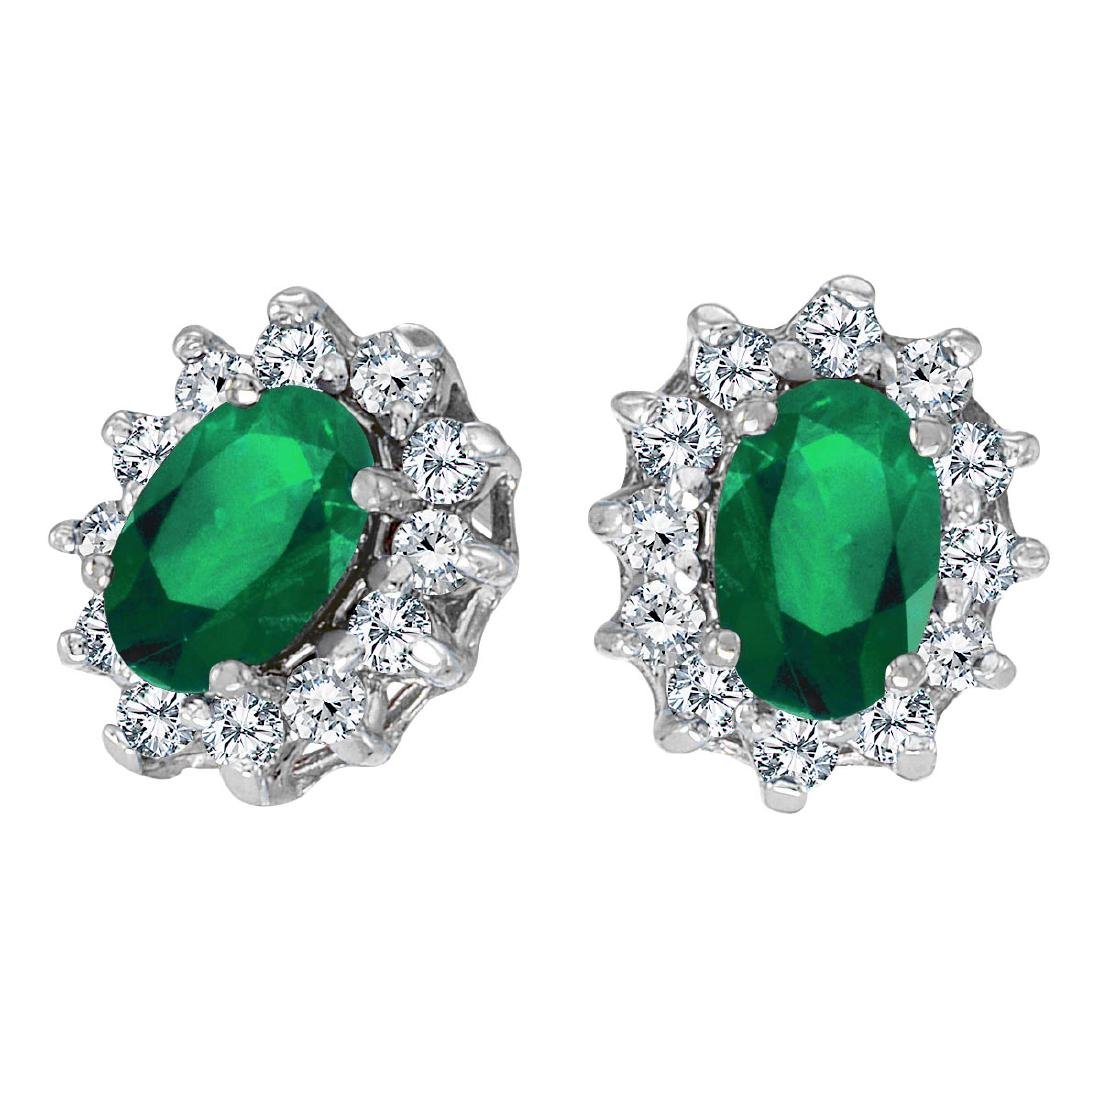 Certified 14k White Gold Oval Emerald and .25 total CTW